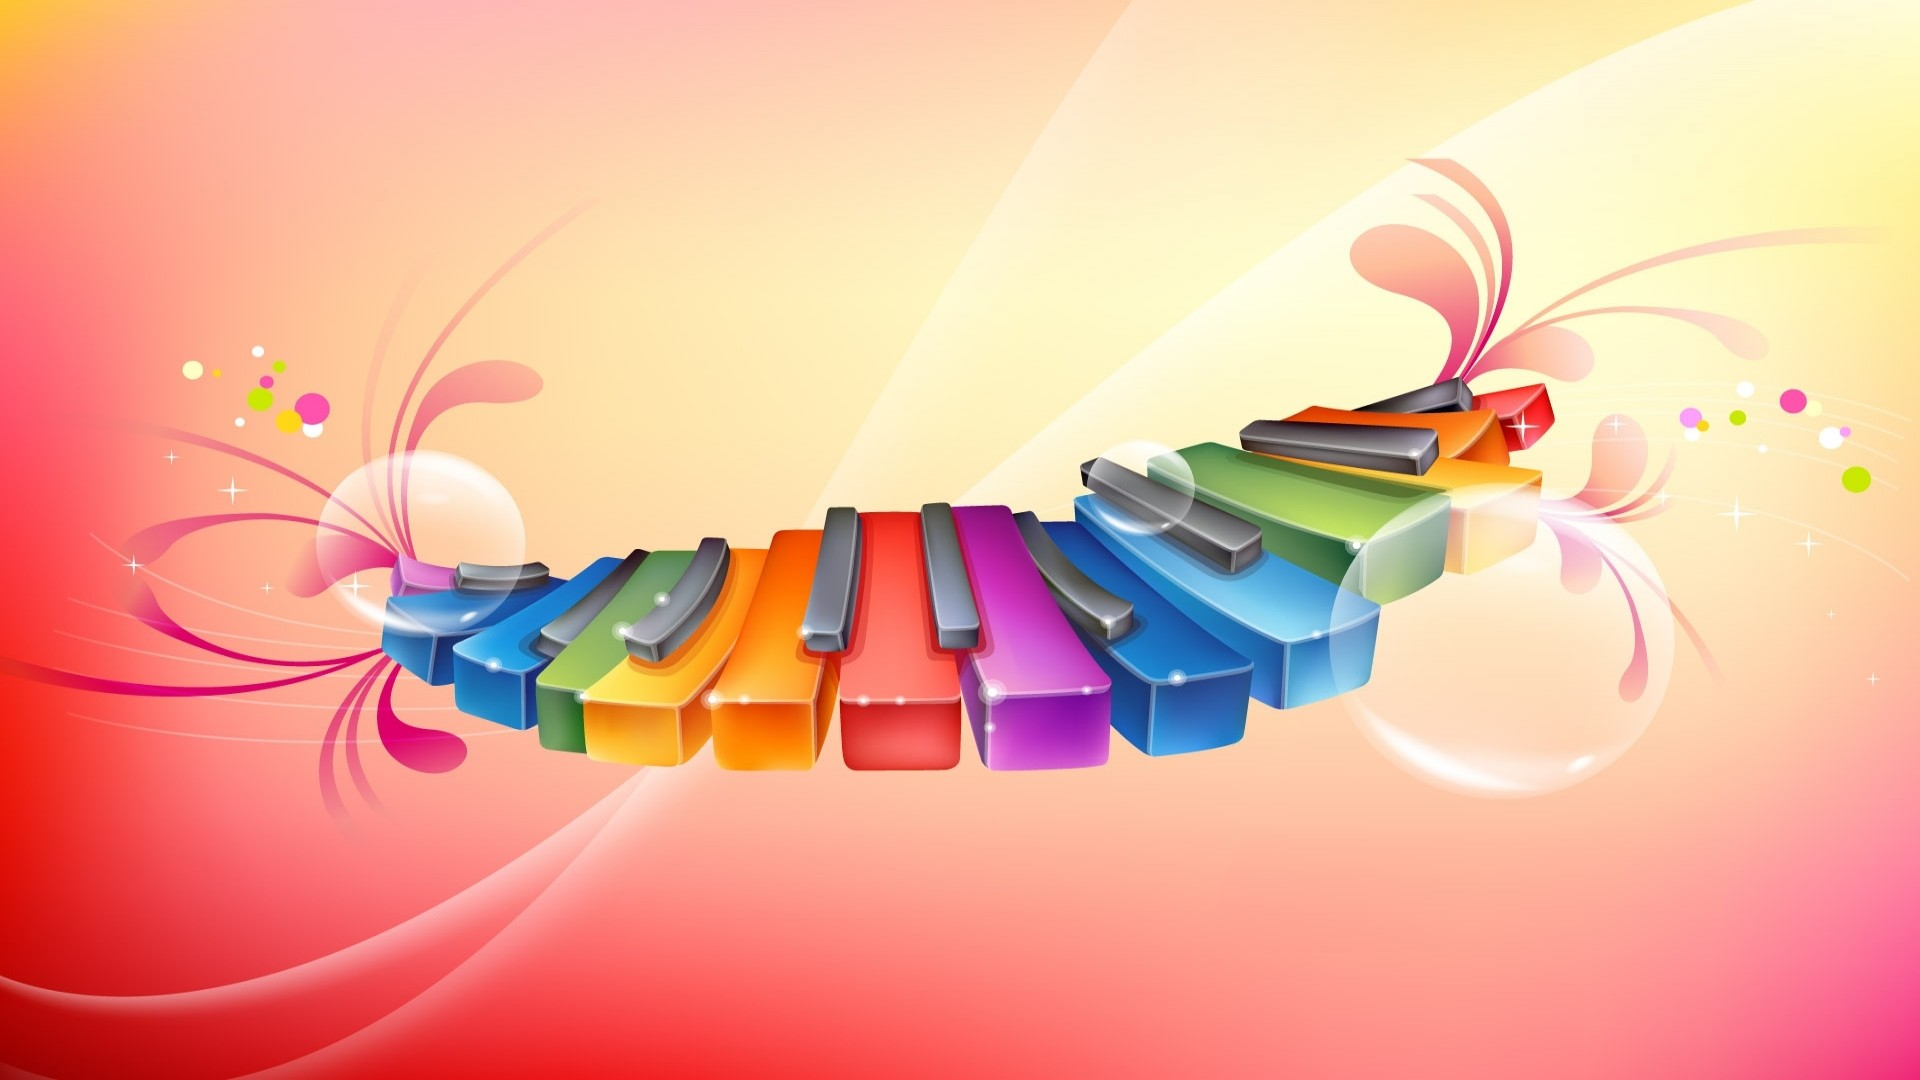 Colorful Music Background Wallpaper HD 2557 Full HD Wallpaper .